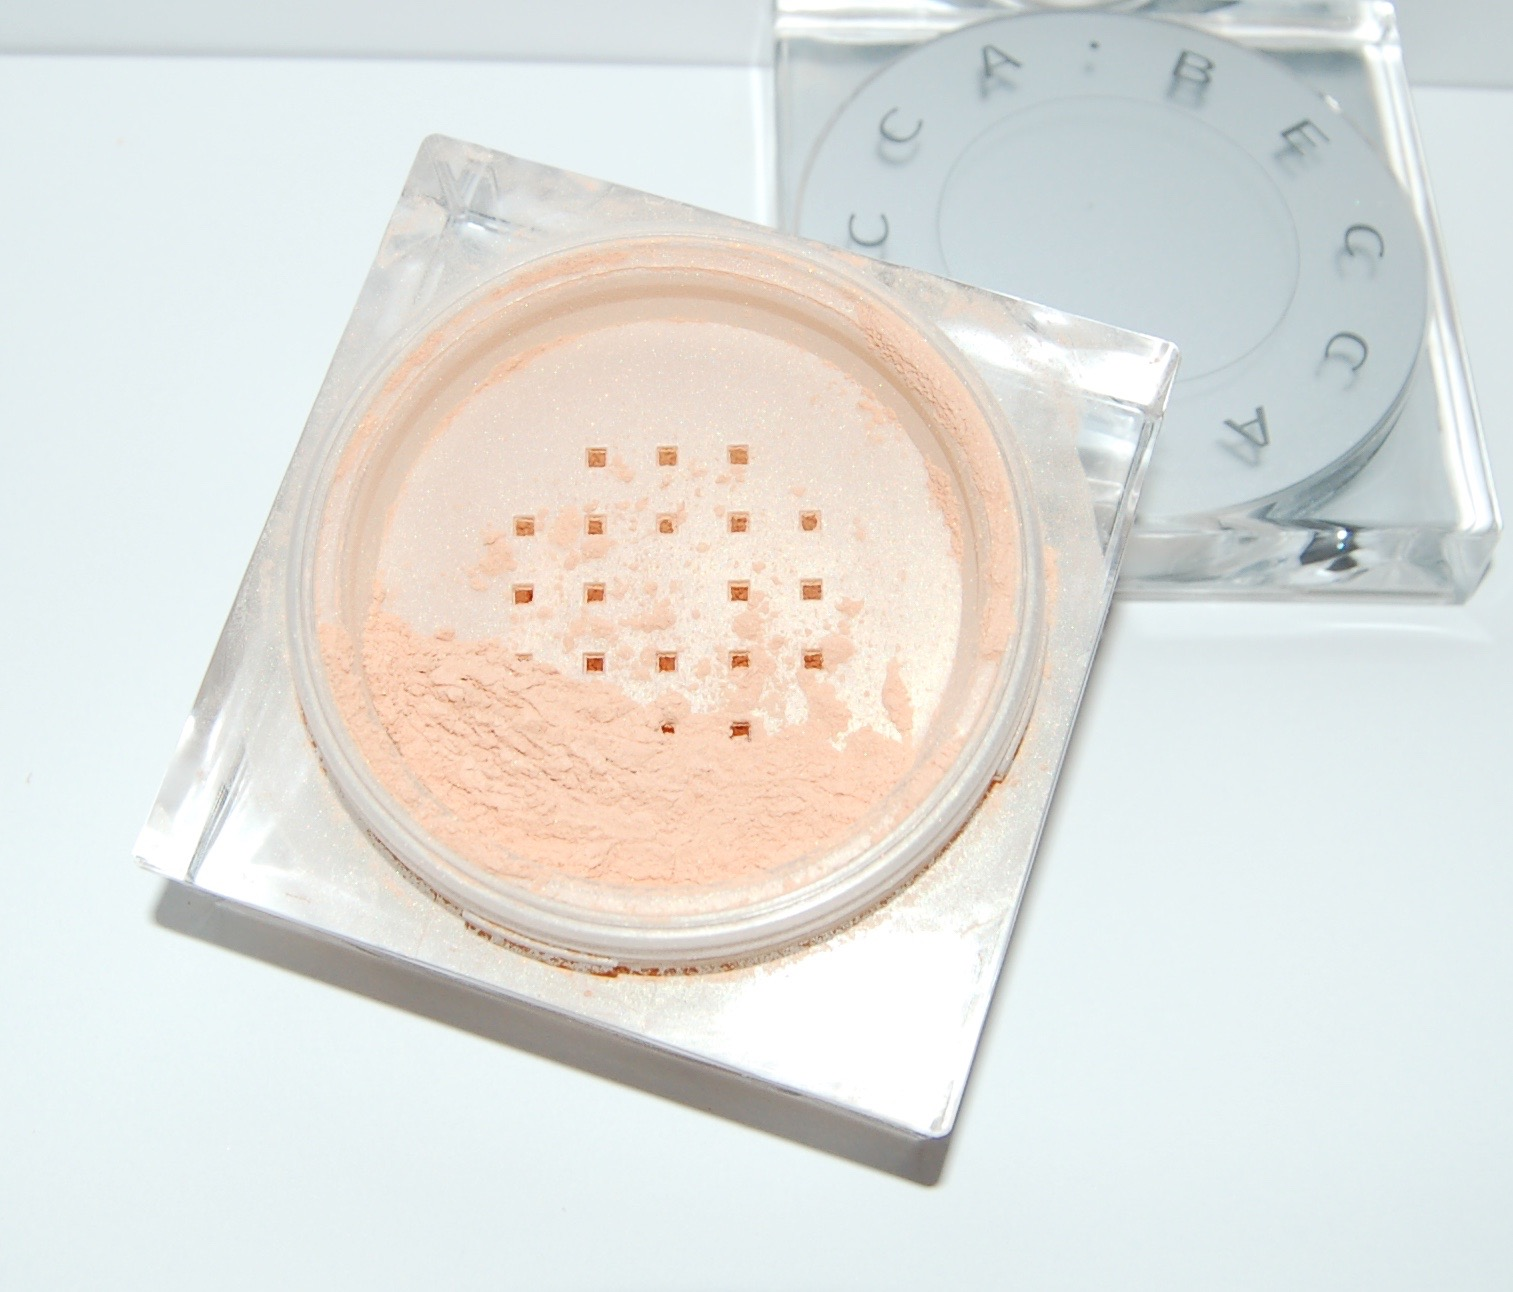 Becca Soft Light Blurring Setting Powder